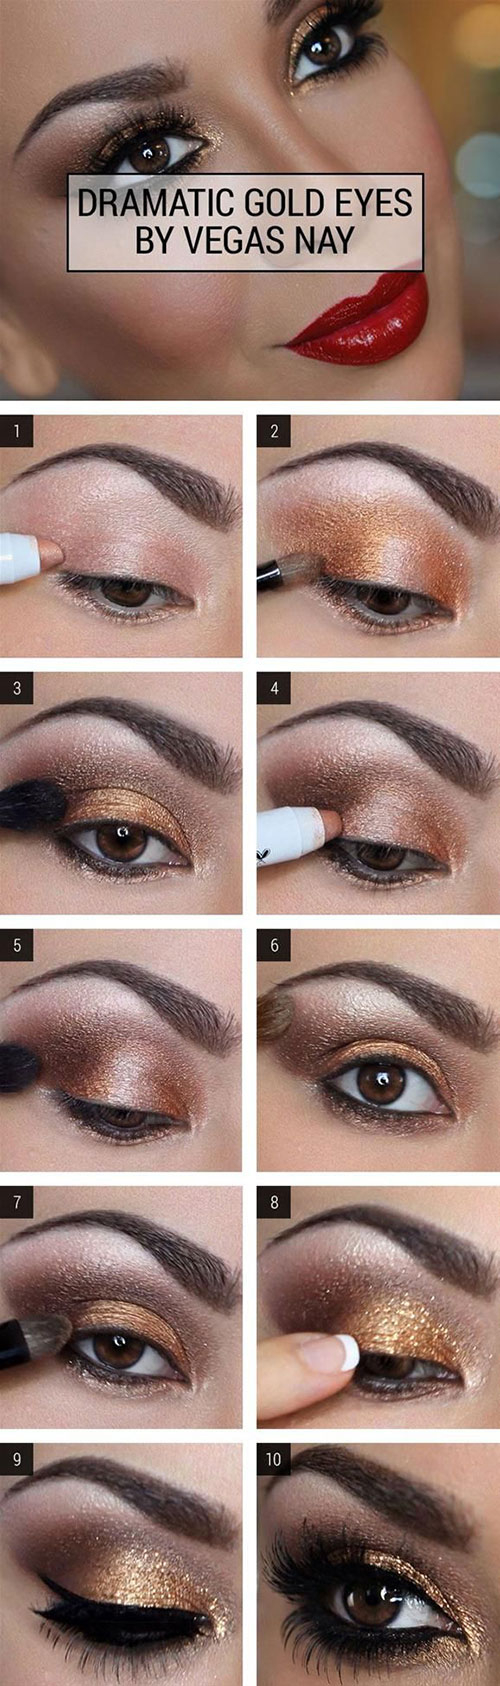 Easy Evening Eye Makeup How To Do Smokey Eye Makeup Top 10 Tutorial Pictures For 2019